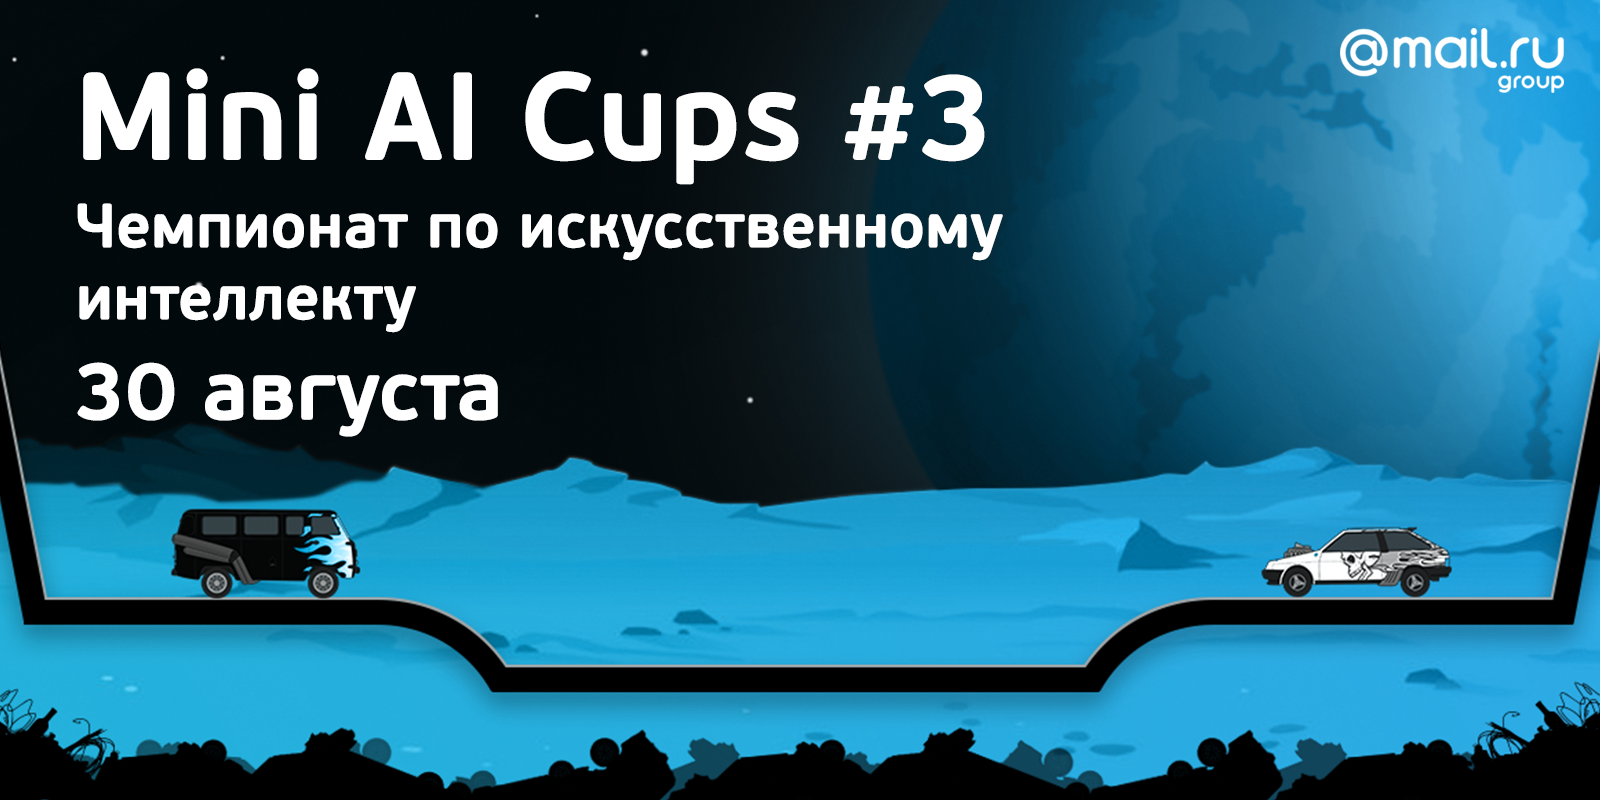 Run the Mini AI Cup # 3. The battle of cars in tight confined spaces